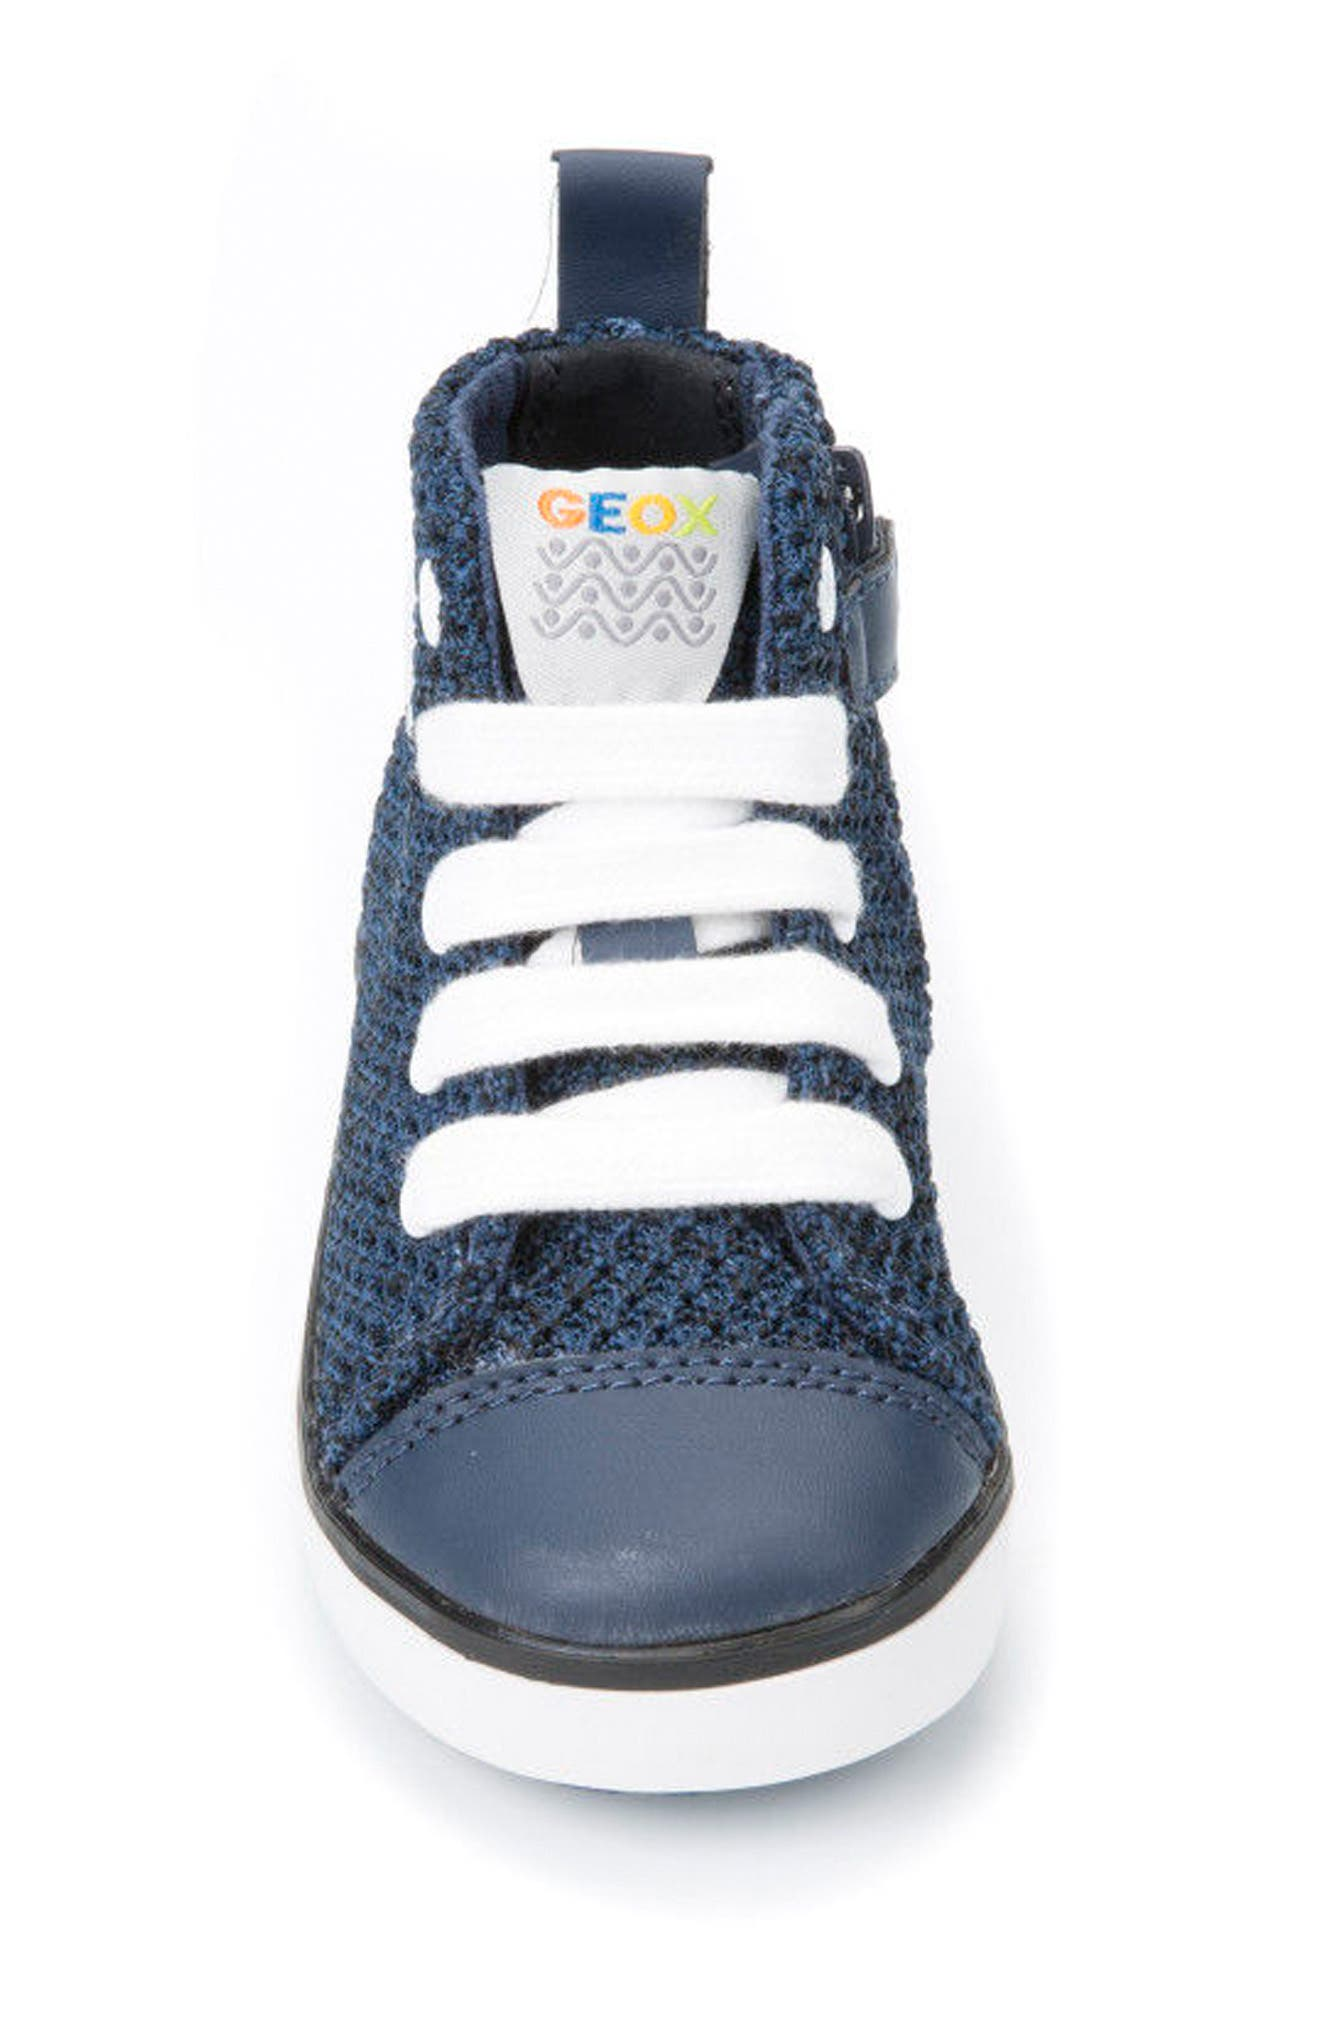 Kilwi Knit High Top Sneaker,                             Alternate thumbnail 4, color,                             Navy